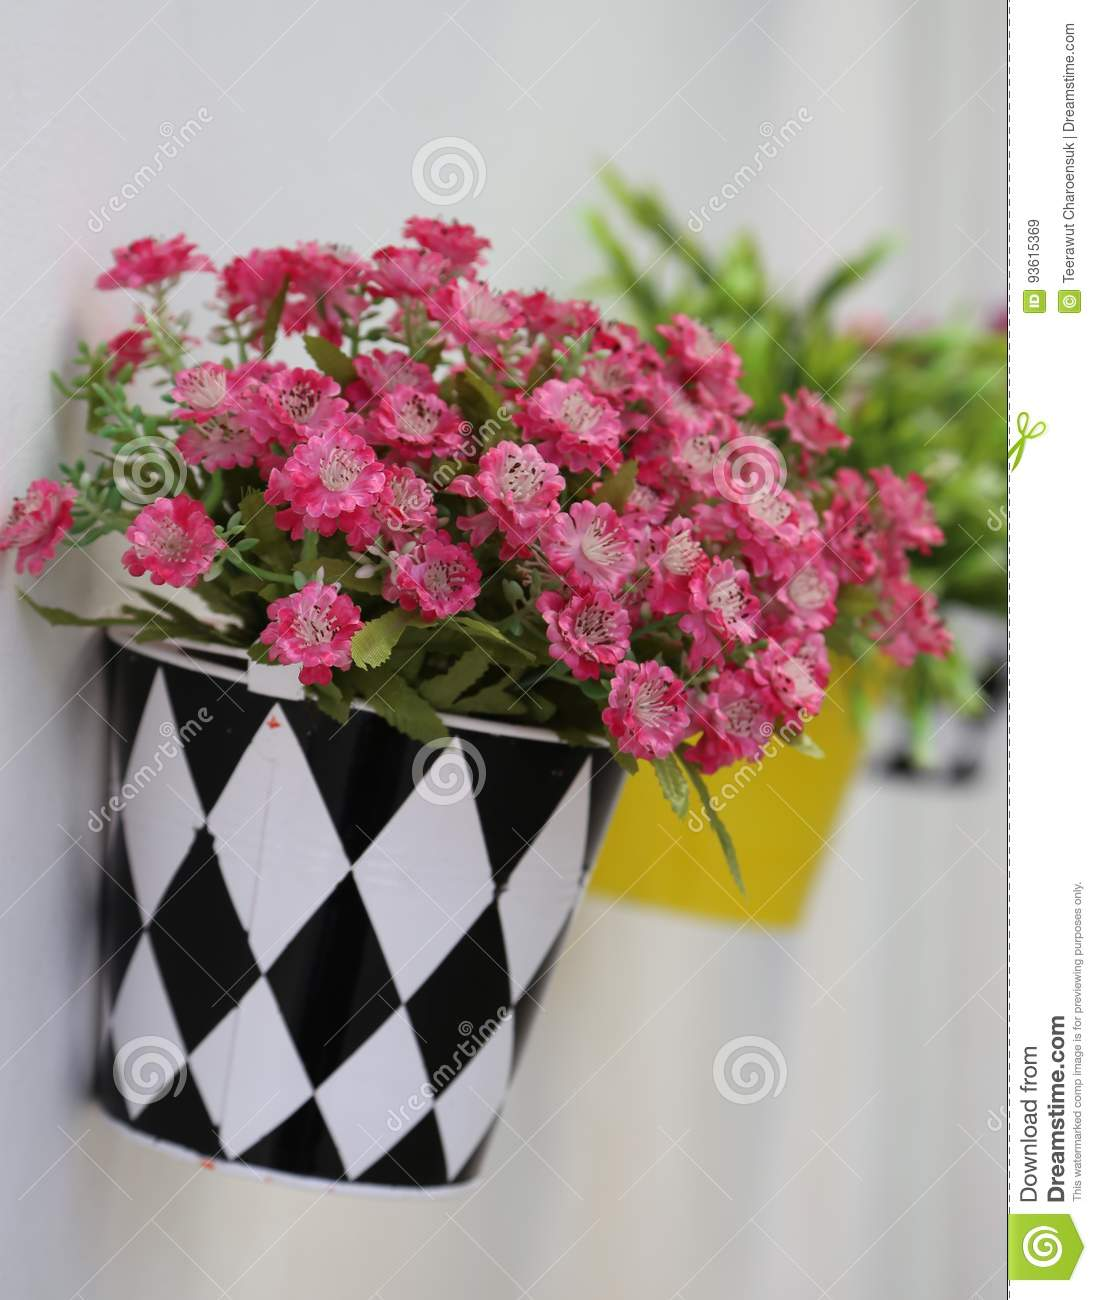 Artificial flowers stock image image of outside flowers 93615369 artificial colorful flowers in black and white pot for wall decoration mightylinksfo